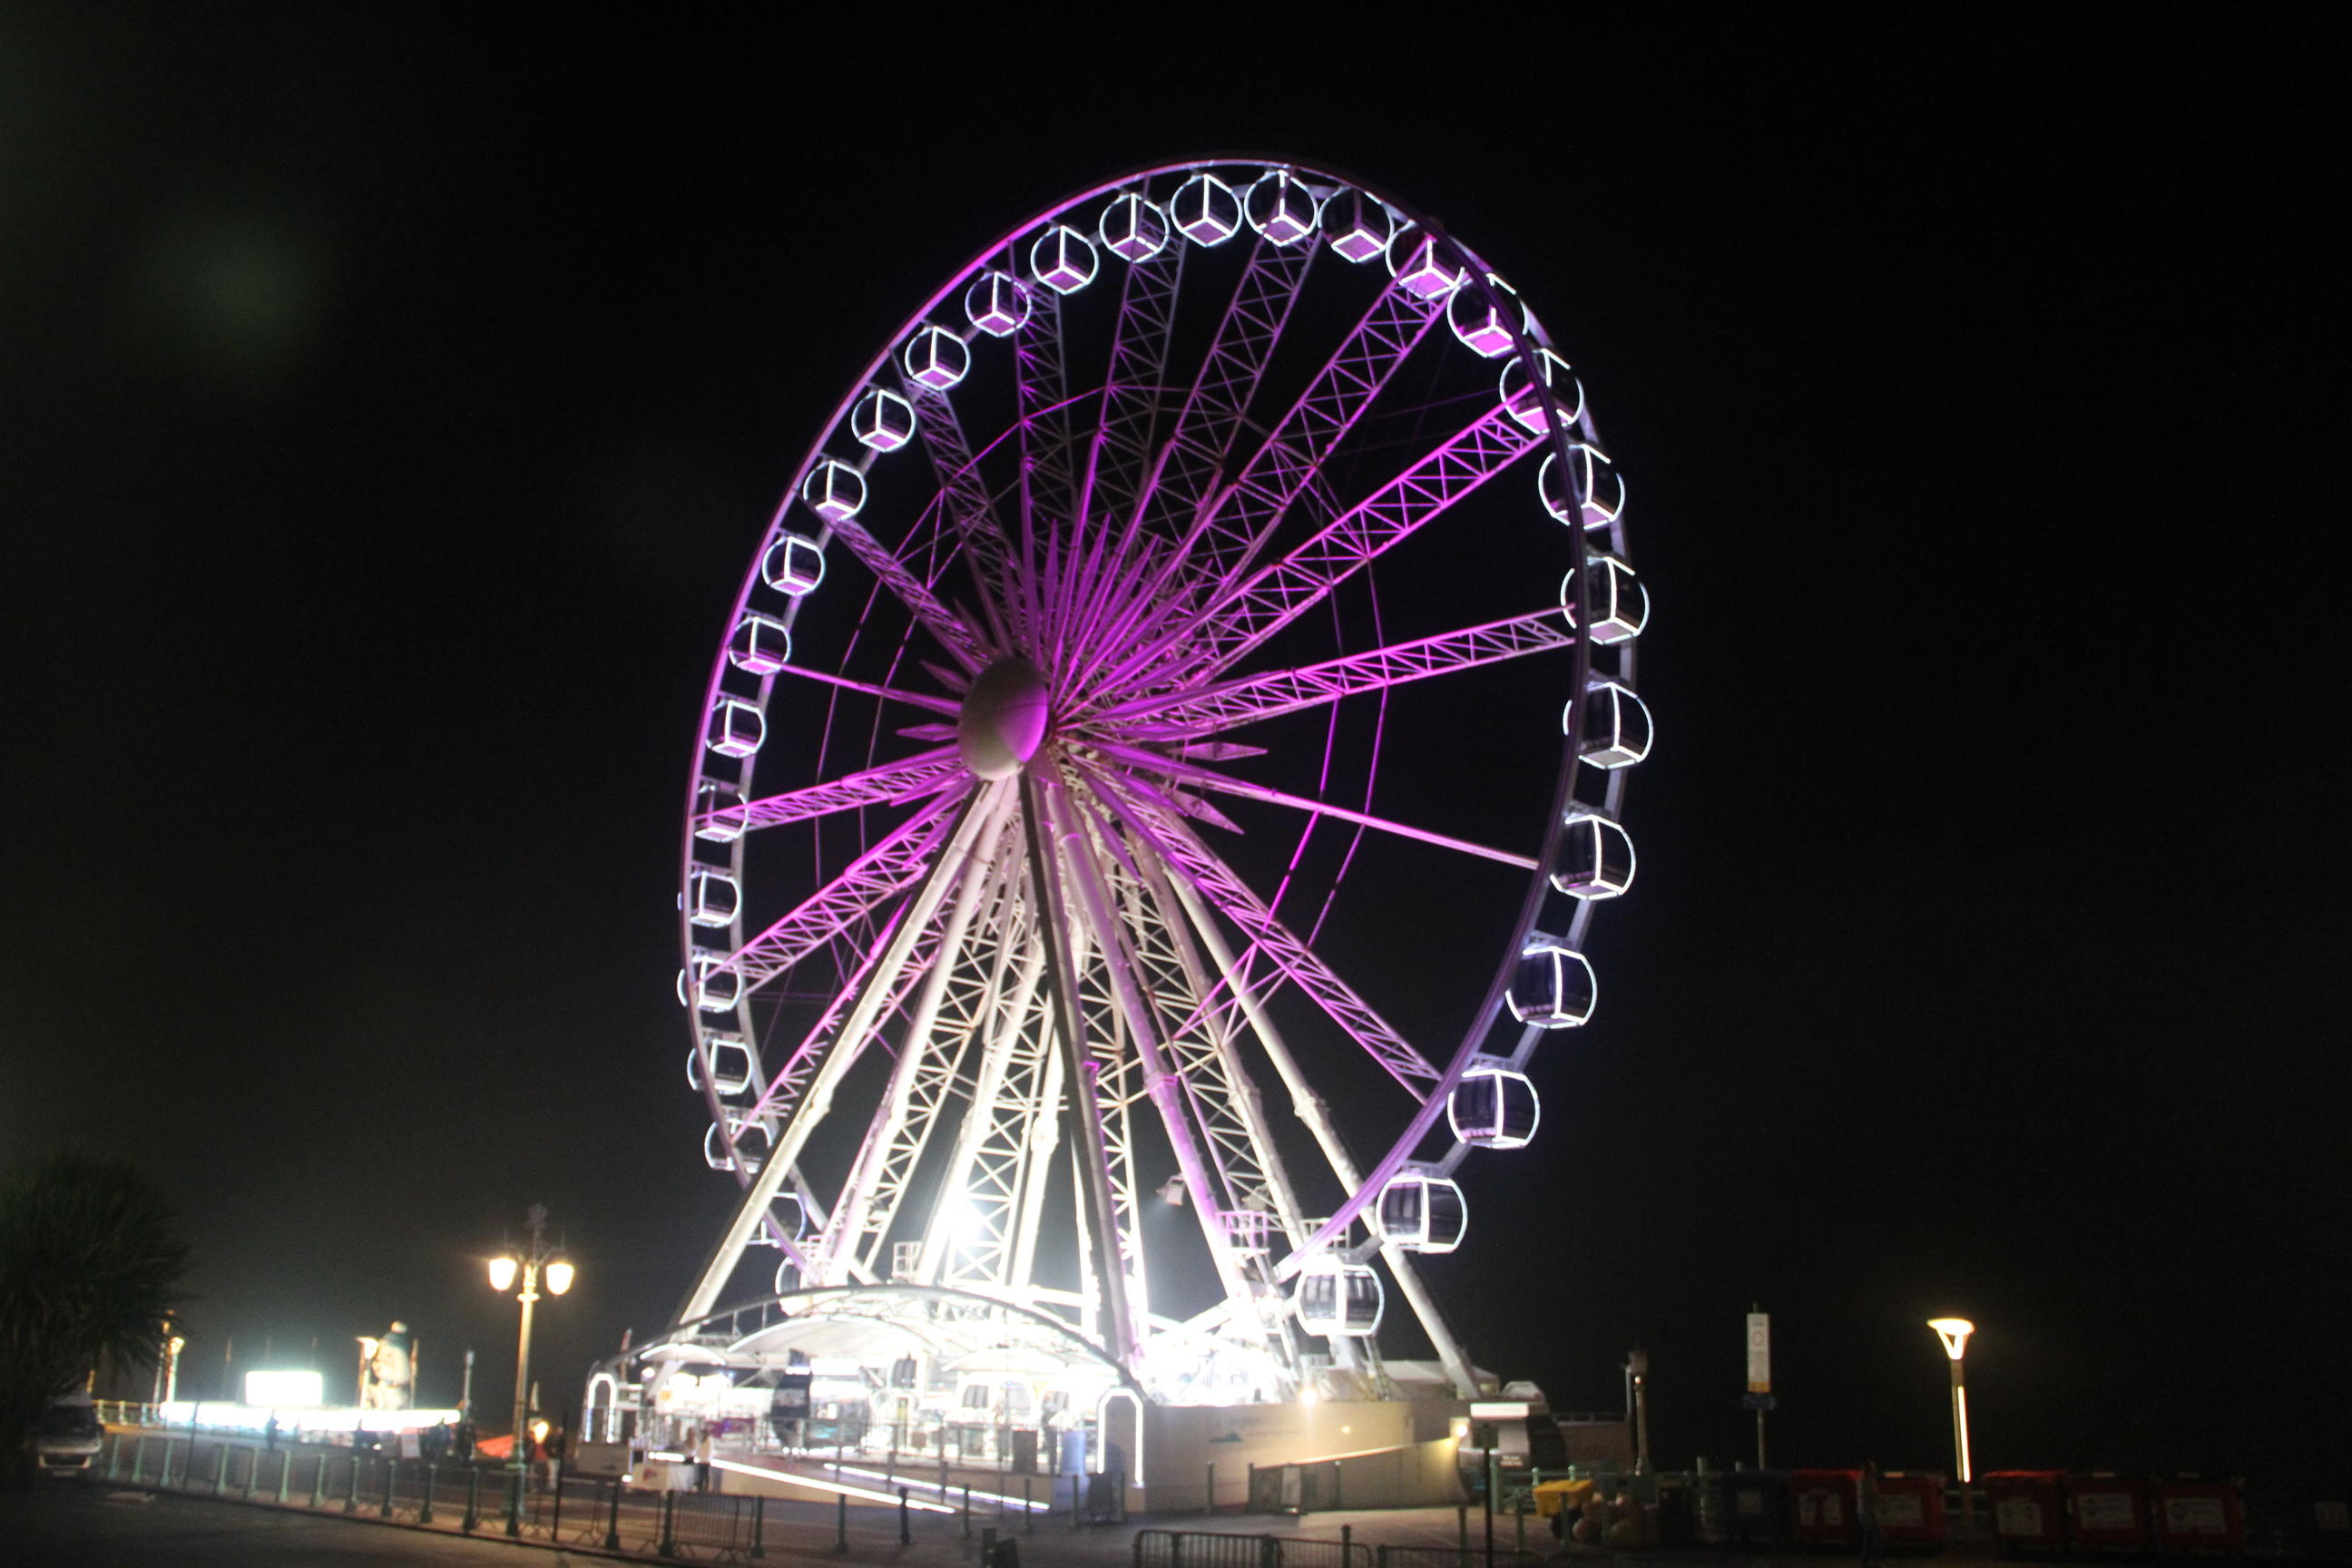 Brighton Wheel turn it purple for Pancreatic Cancer Action Awareness Month